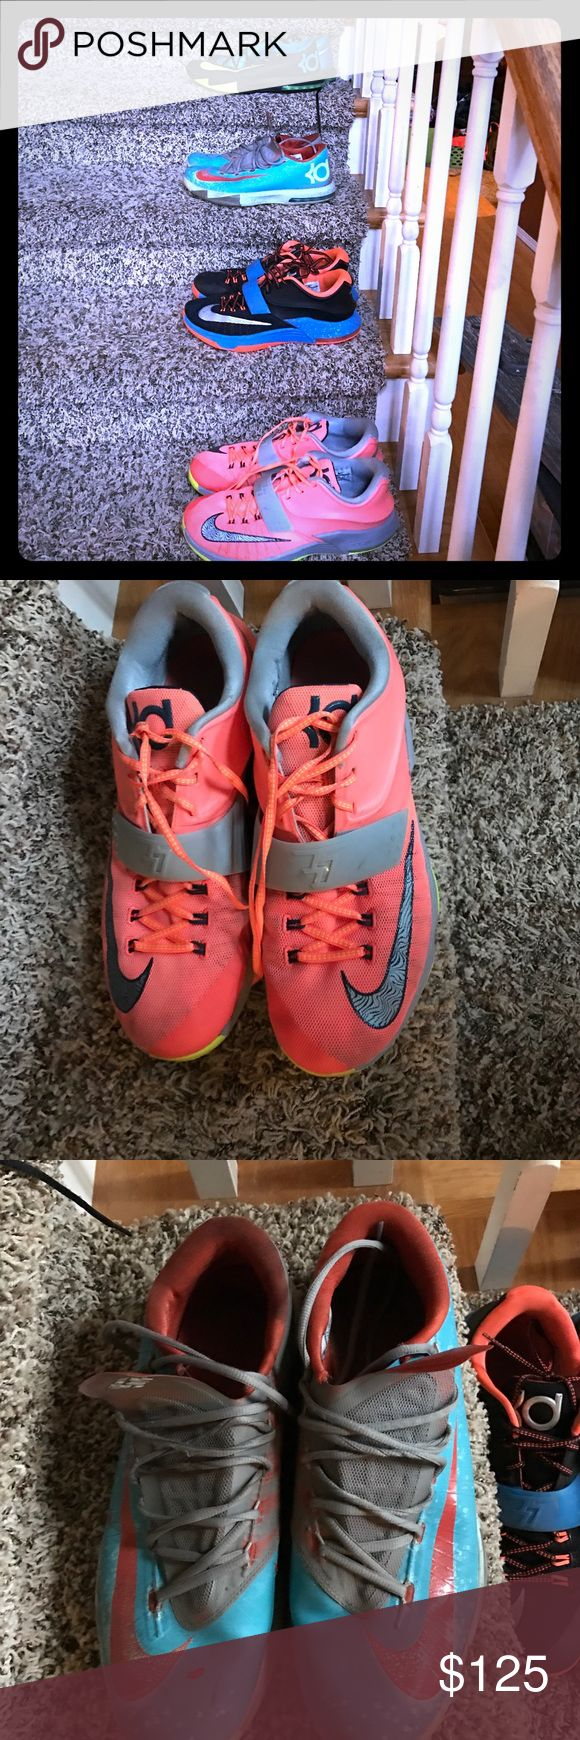 Nike KD basketball shoes Men's lot of 4 All used and size 13 except aqua blir and orange pair are 12.5. All show wear but have a lot of life left in them. Nike Shoes Sneakers